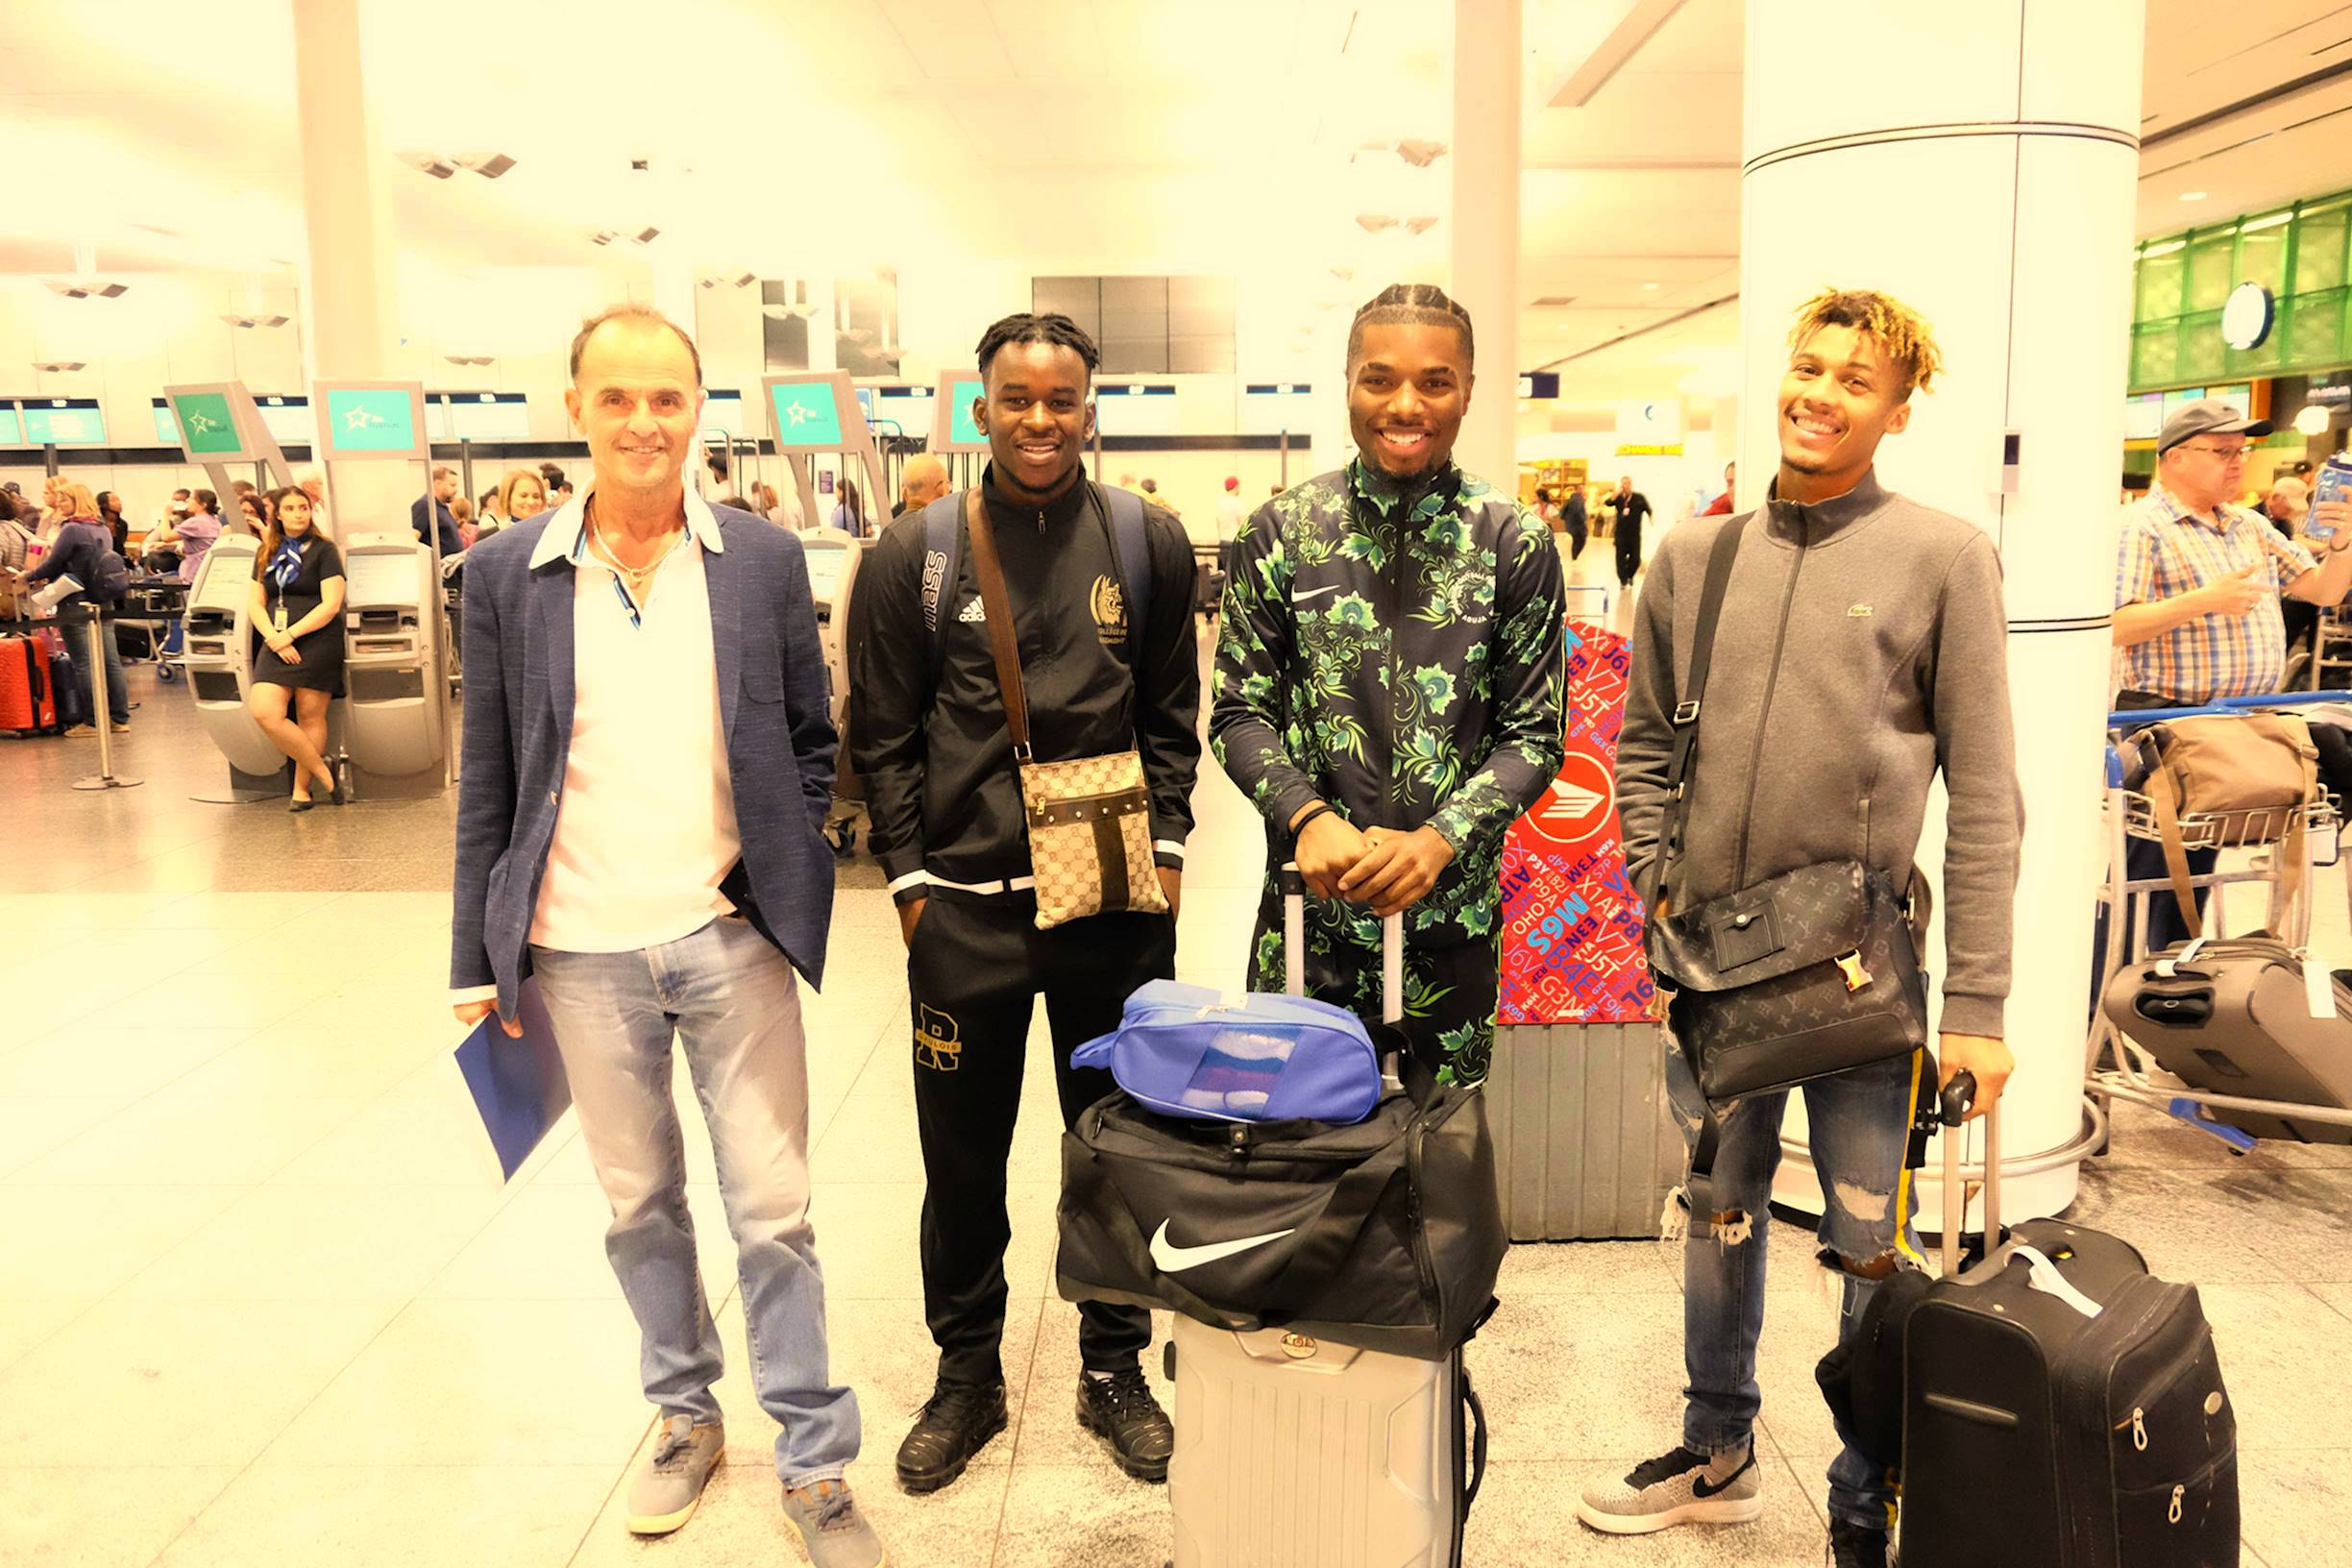 Institut jmg try out RC Lens depart paris 19 septembre 2019 présent David Tshibangu, Dimbas Ryan, Amos Kalonga. Andrea Puzo